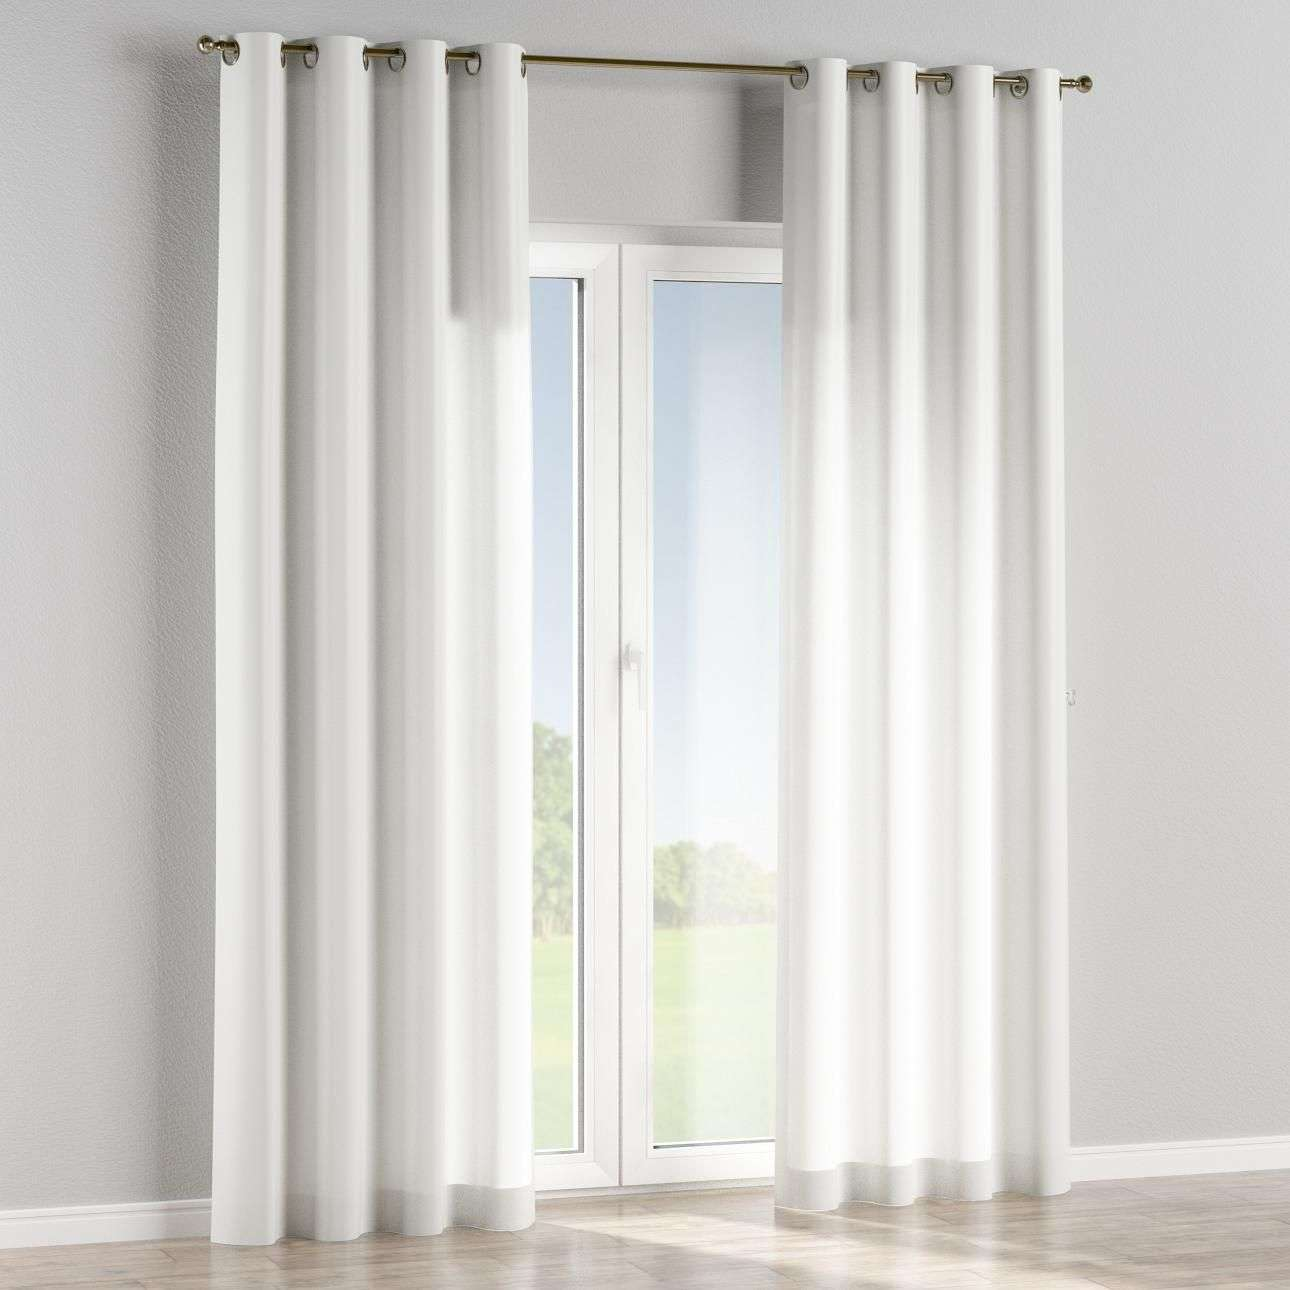 Eyelet curtains in collection Milano, fabric: 150-31